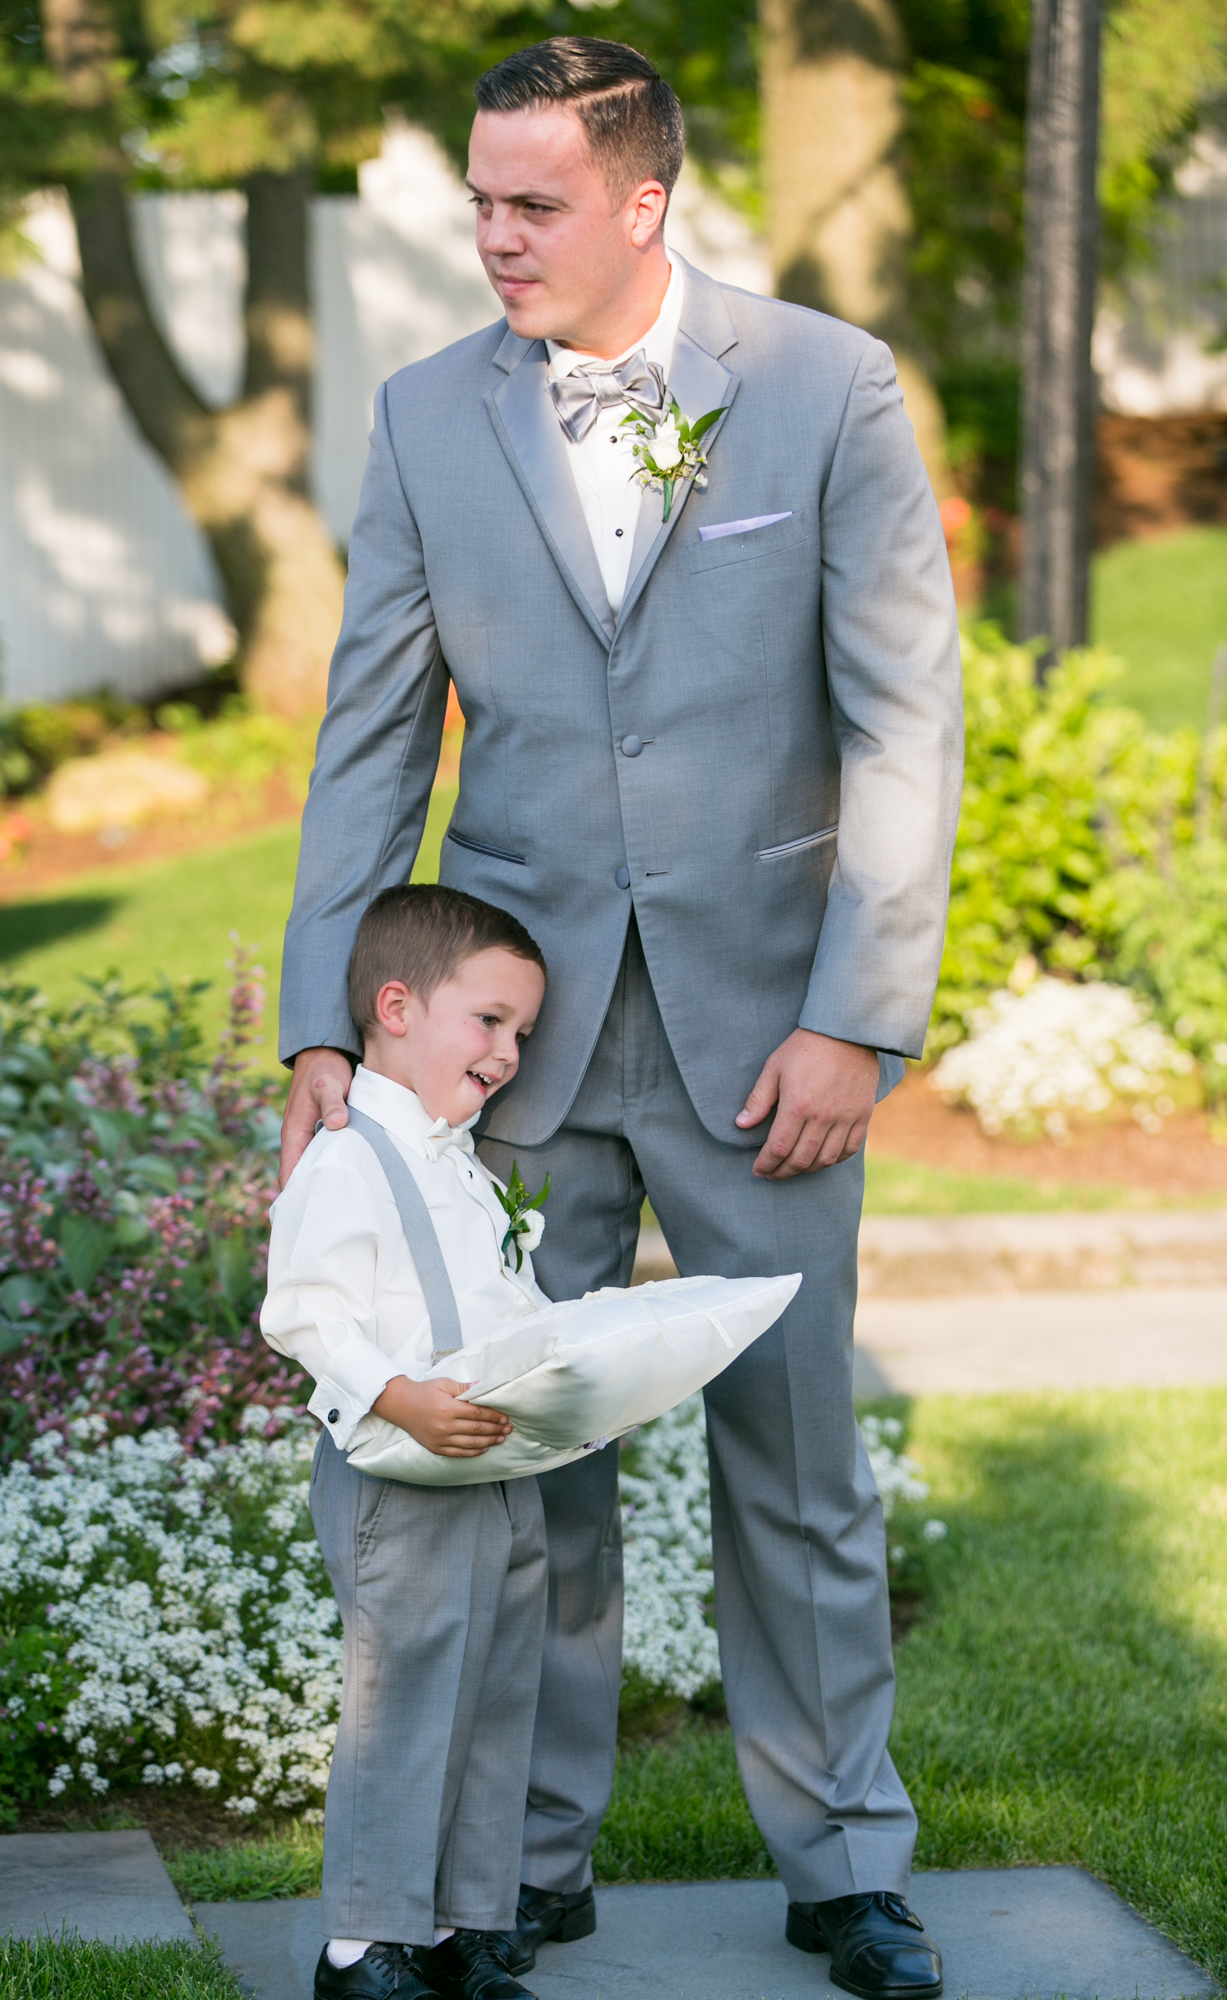 Allegra_Anderson_Photography_Connecticut_Wedding_Photographer_Amarantes-35